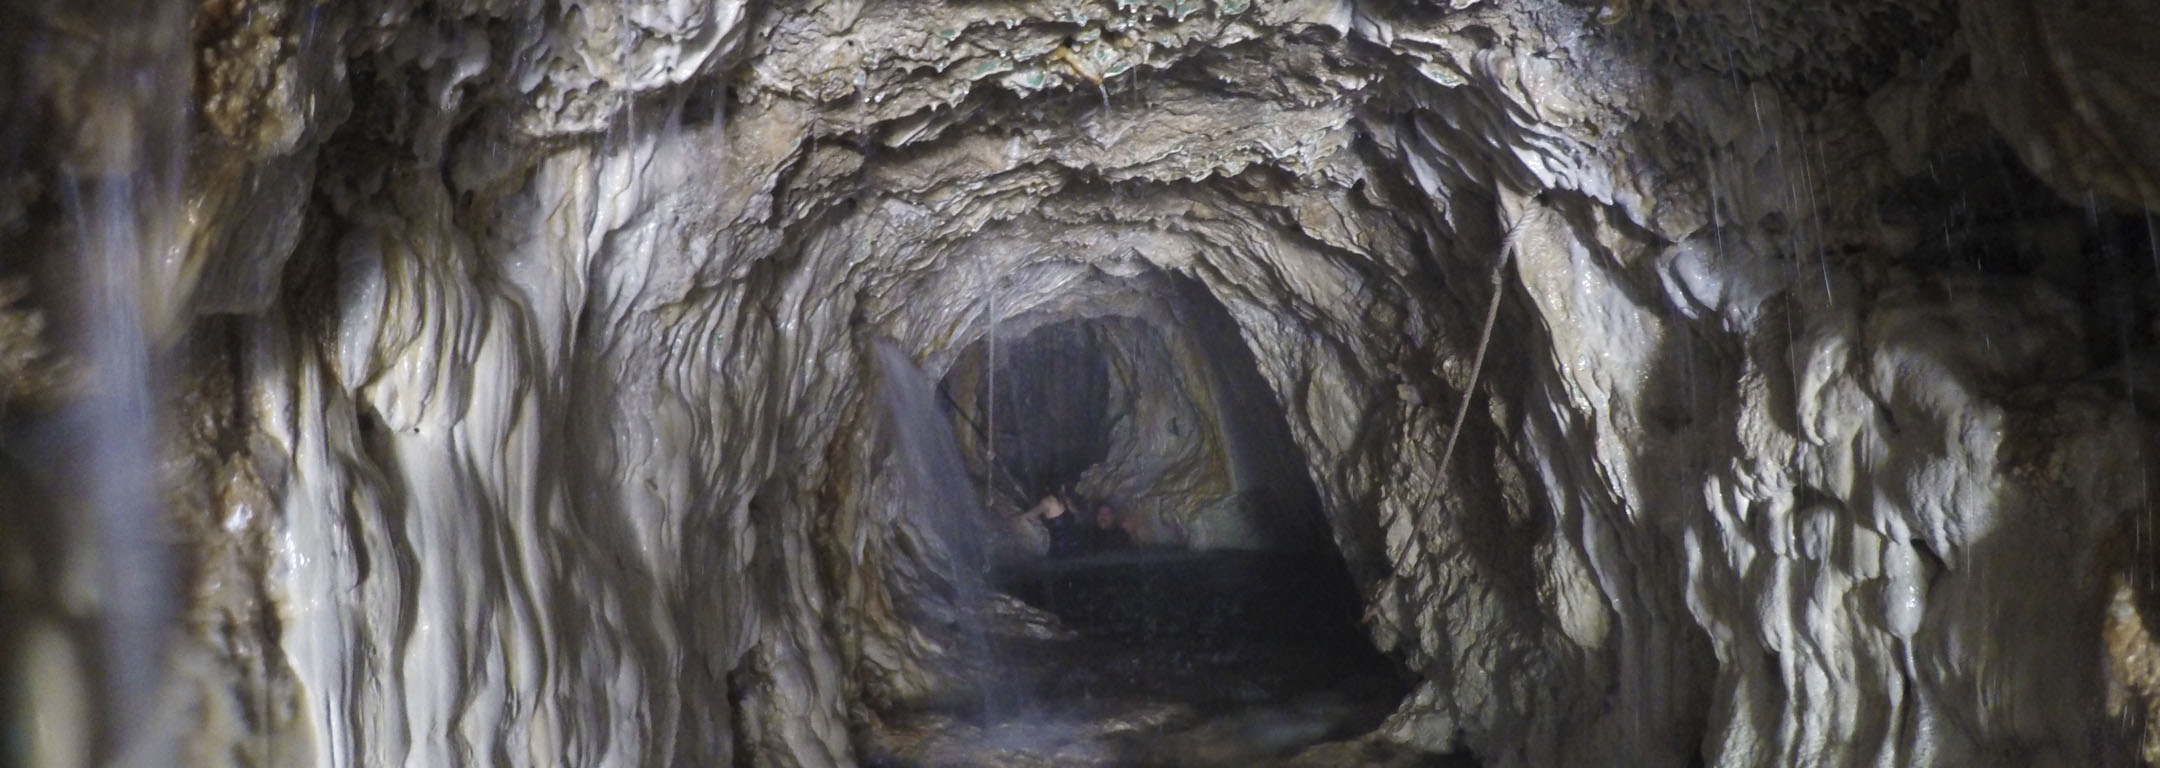 Thermal water tunnel